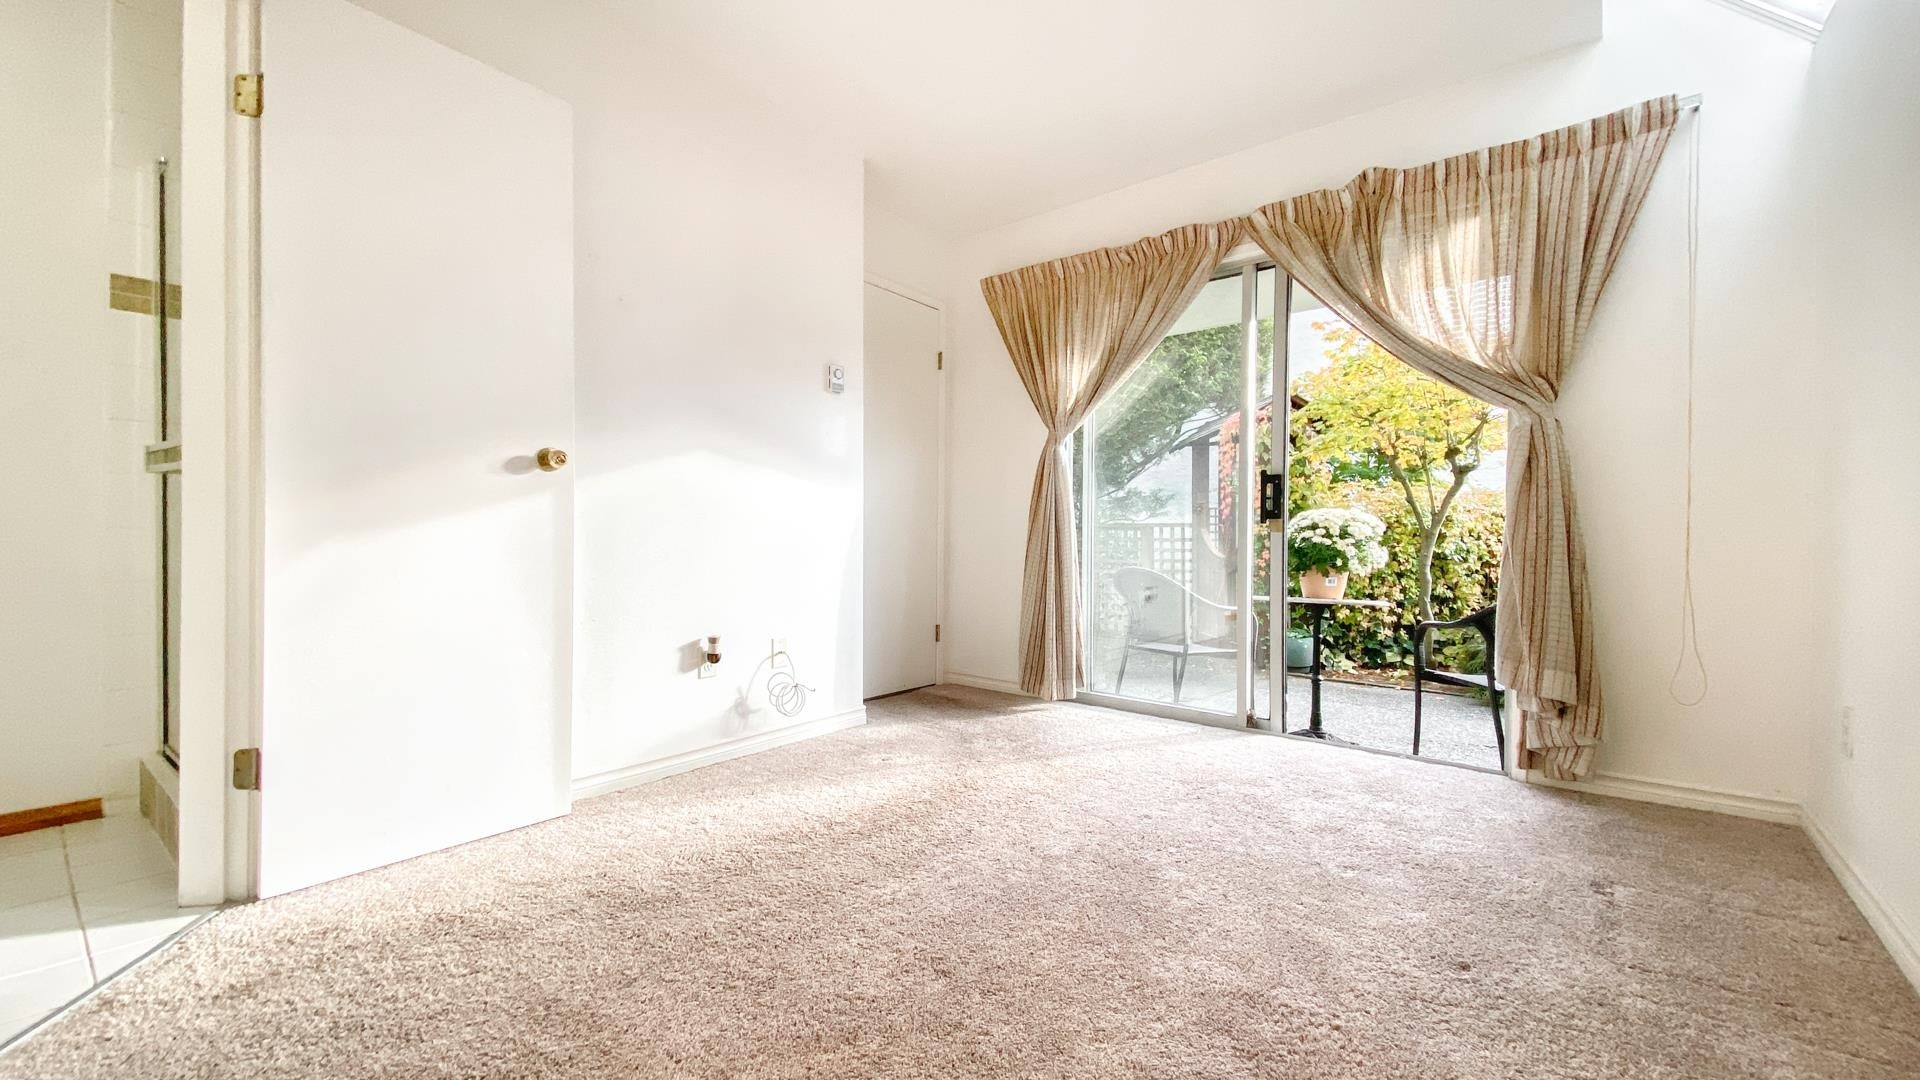 1 410 MAHON AVENUE - Lower Lonsdale Townhouse for sale, 2 Bedrooms (R2623610) - #22